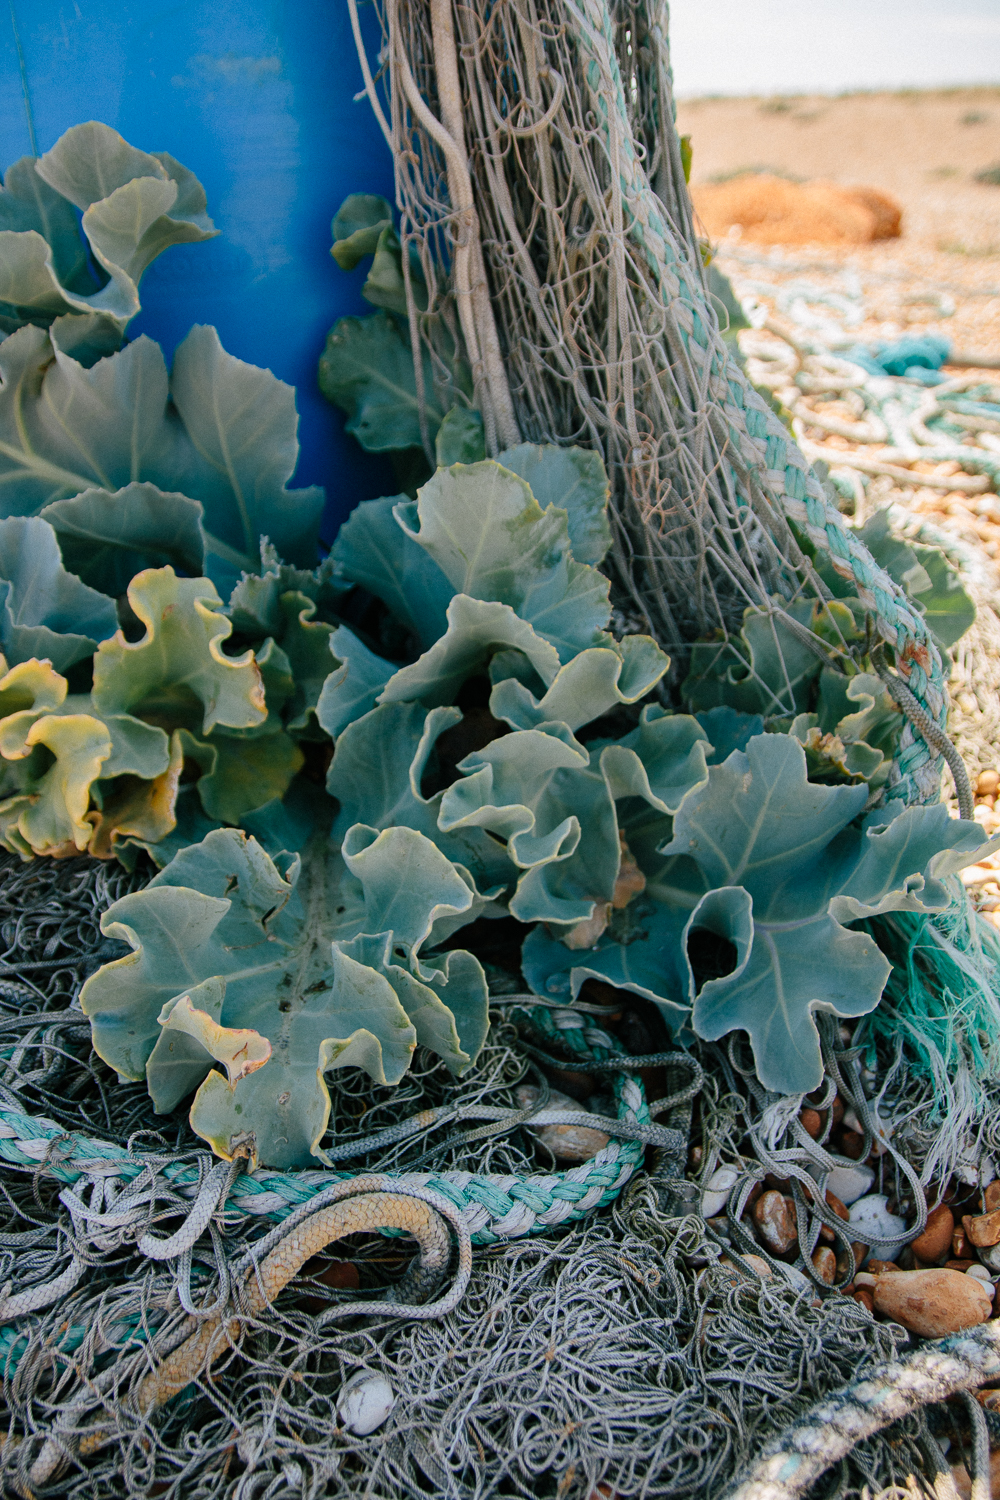 Sea Kale Growing in Abandoned Fishing Nets at Dungeness Nature Reserve in Kent